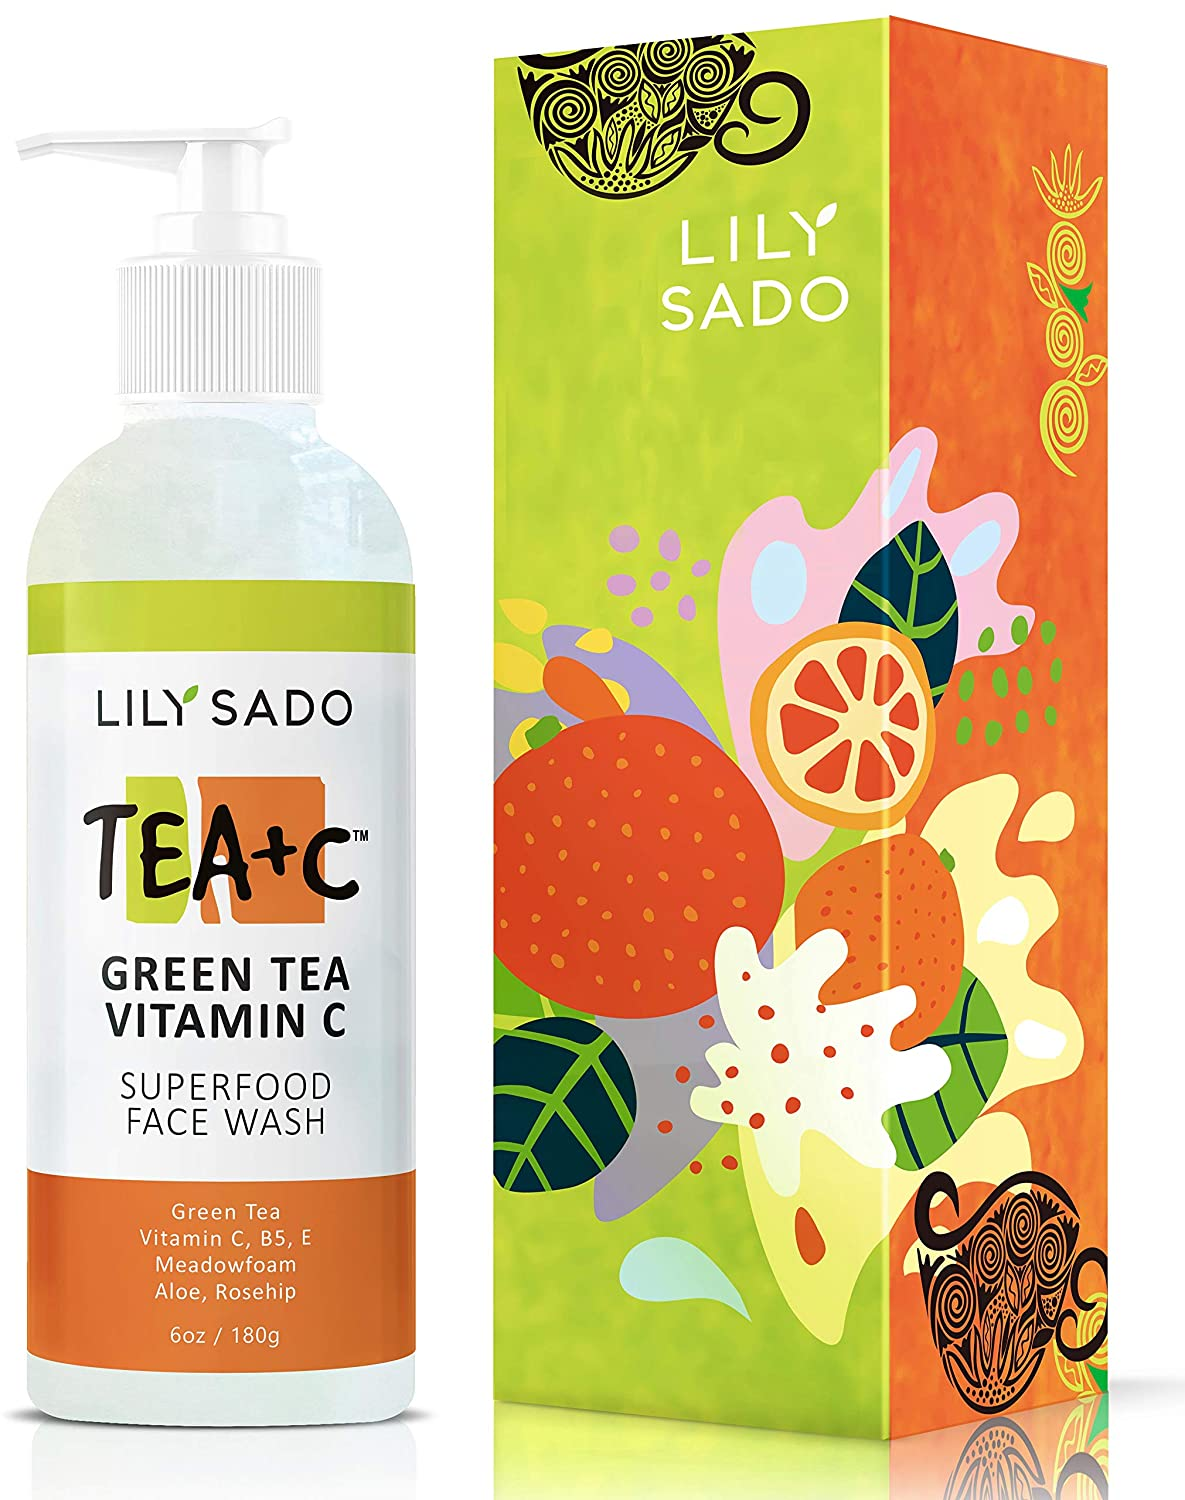 LILY SADO TEA+C Green Tea and Vitamin C Face Cleanser – Vegan Antioxidant Face Wash with Aloe + Rosehip + Meadowfoam - Gentle Deep Cleansing for Acne, Blackheads, Blemishes - For All Skin Types - 6 oz